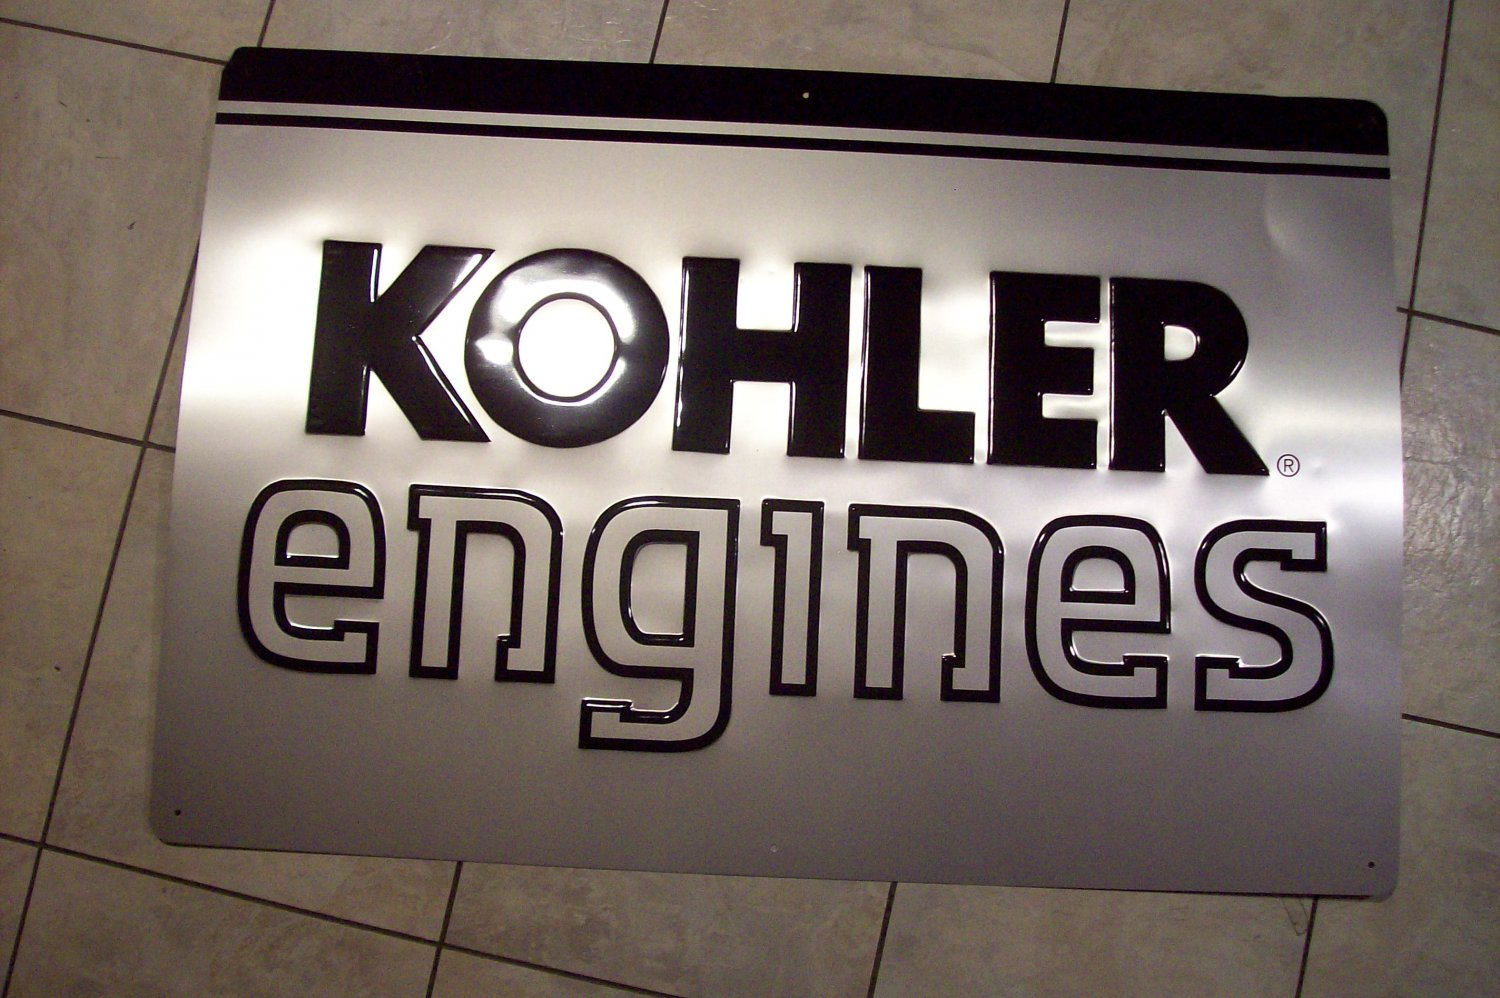 KOHLER Engine ADVERTISING METAL SIGN Industrial Metal Cool Unusual